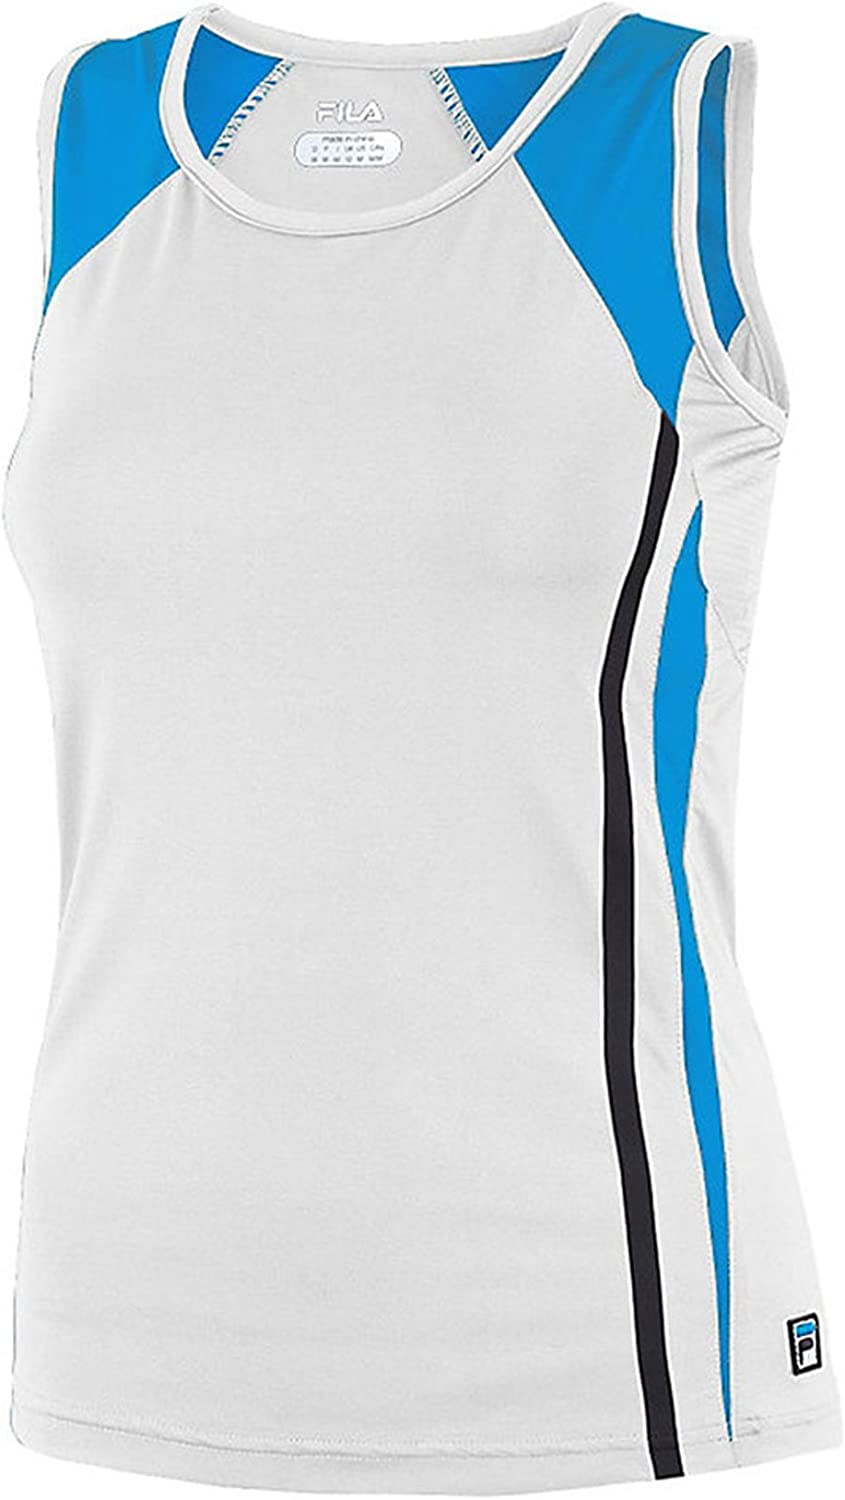 Fila Tennis Dealing full price reduction Women's Max 46% OFF Center Court Top Tank Coverage Full